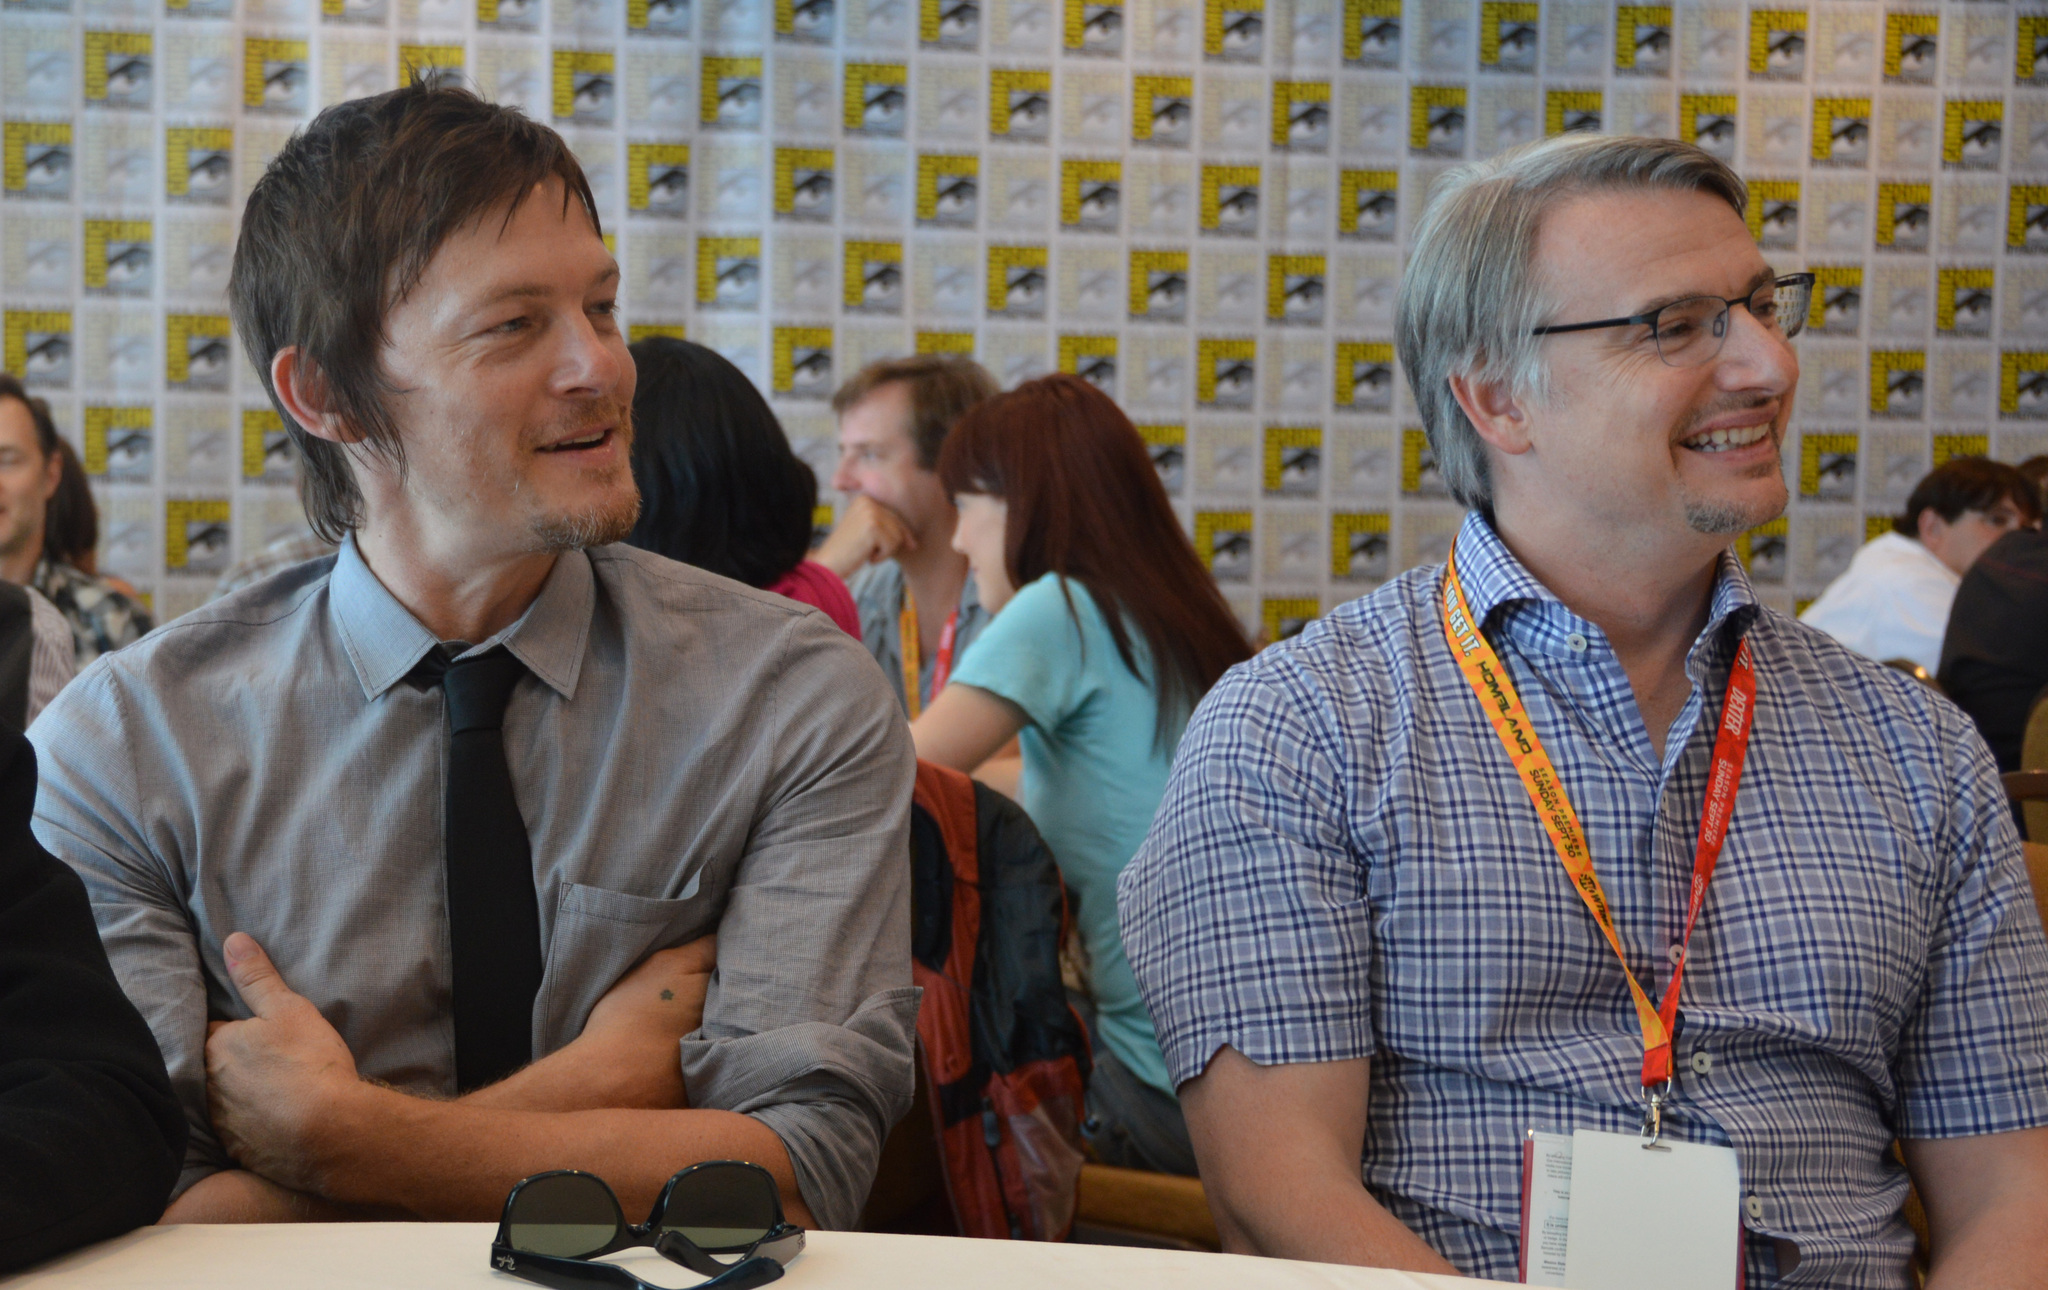 Norman Reedus and Glen Mazzara at an event for The Walking Dead (2010)